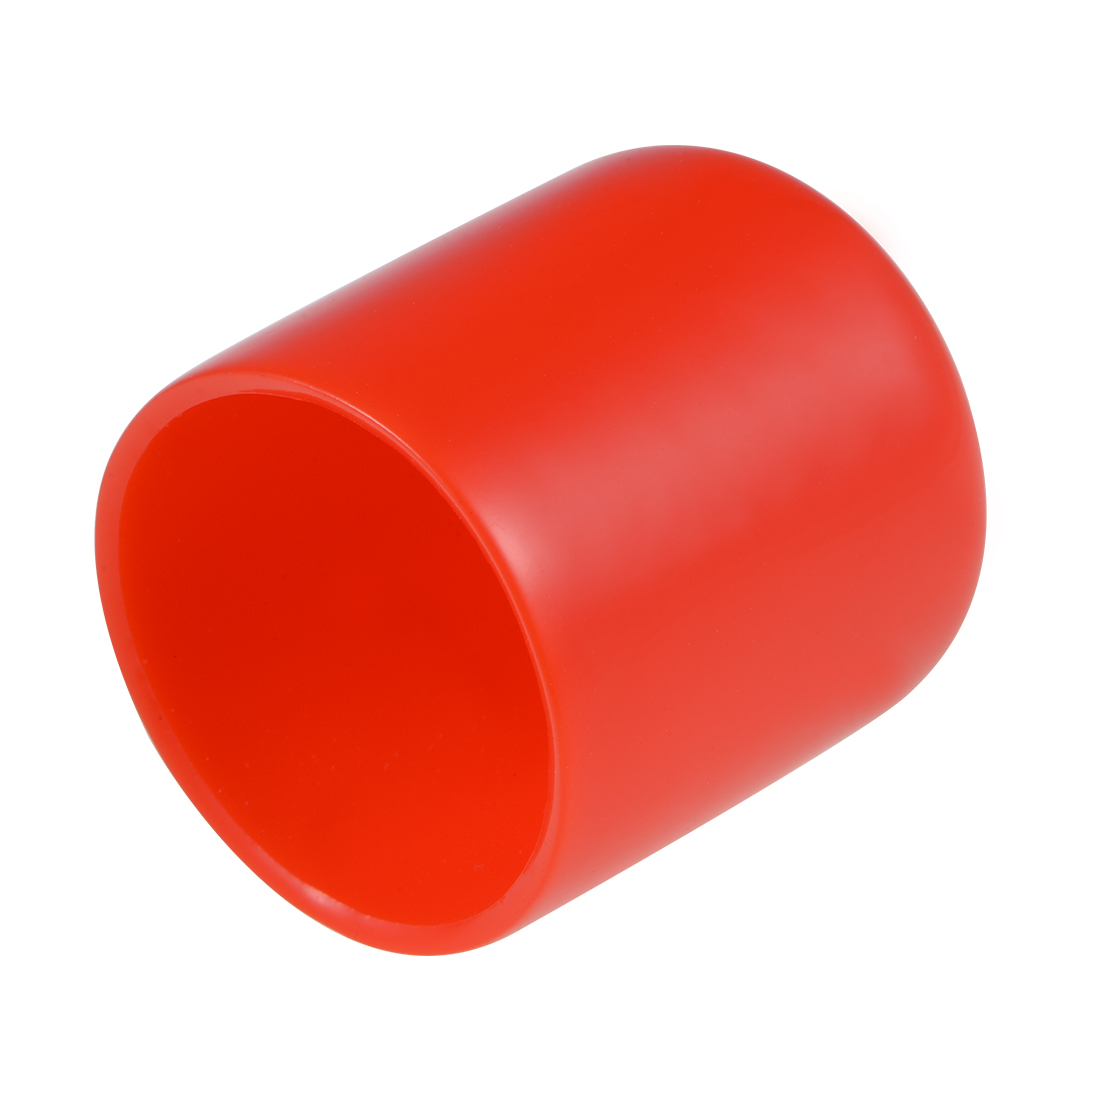 Screw Thread Protector, 28mm ID Round End Cap Cover Red Tube Caps 10pcs